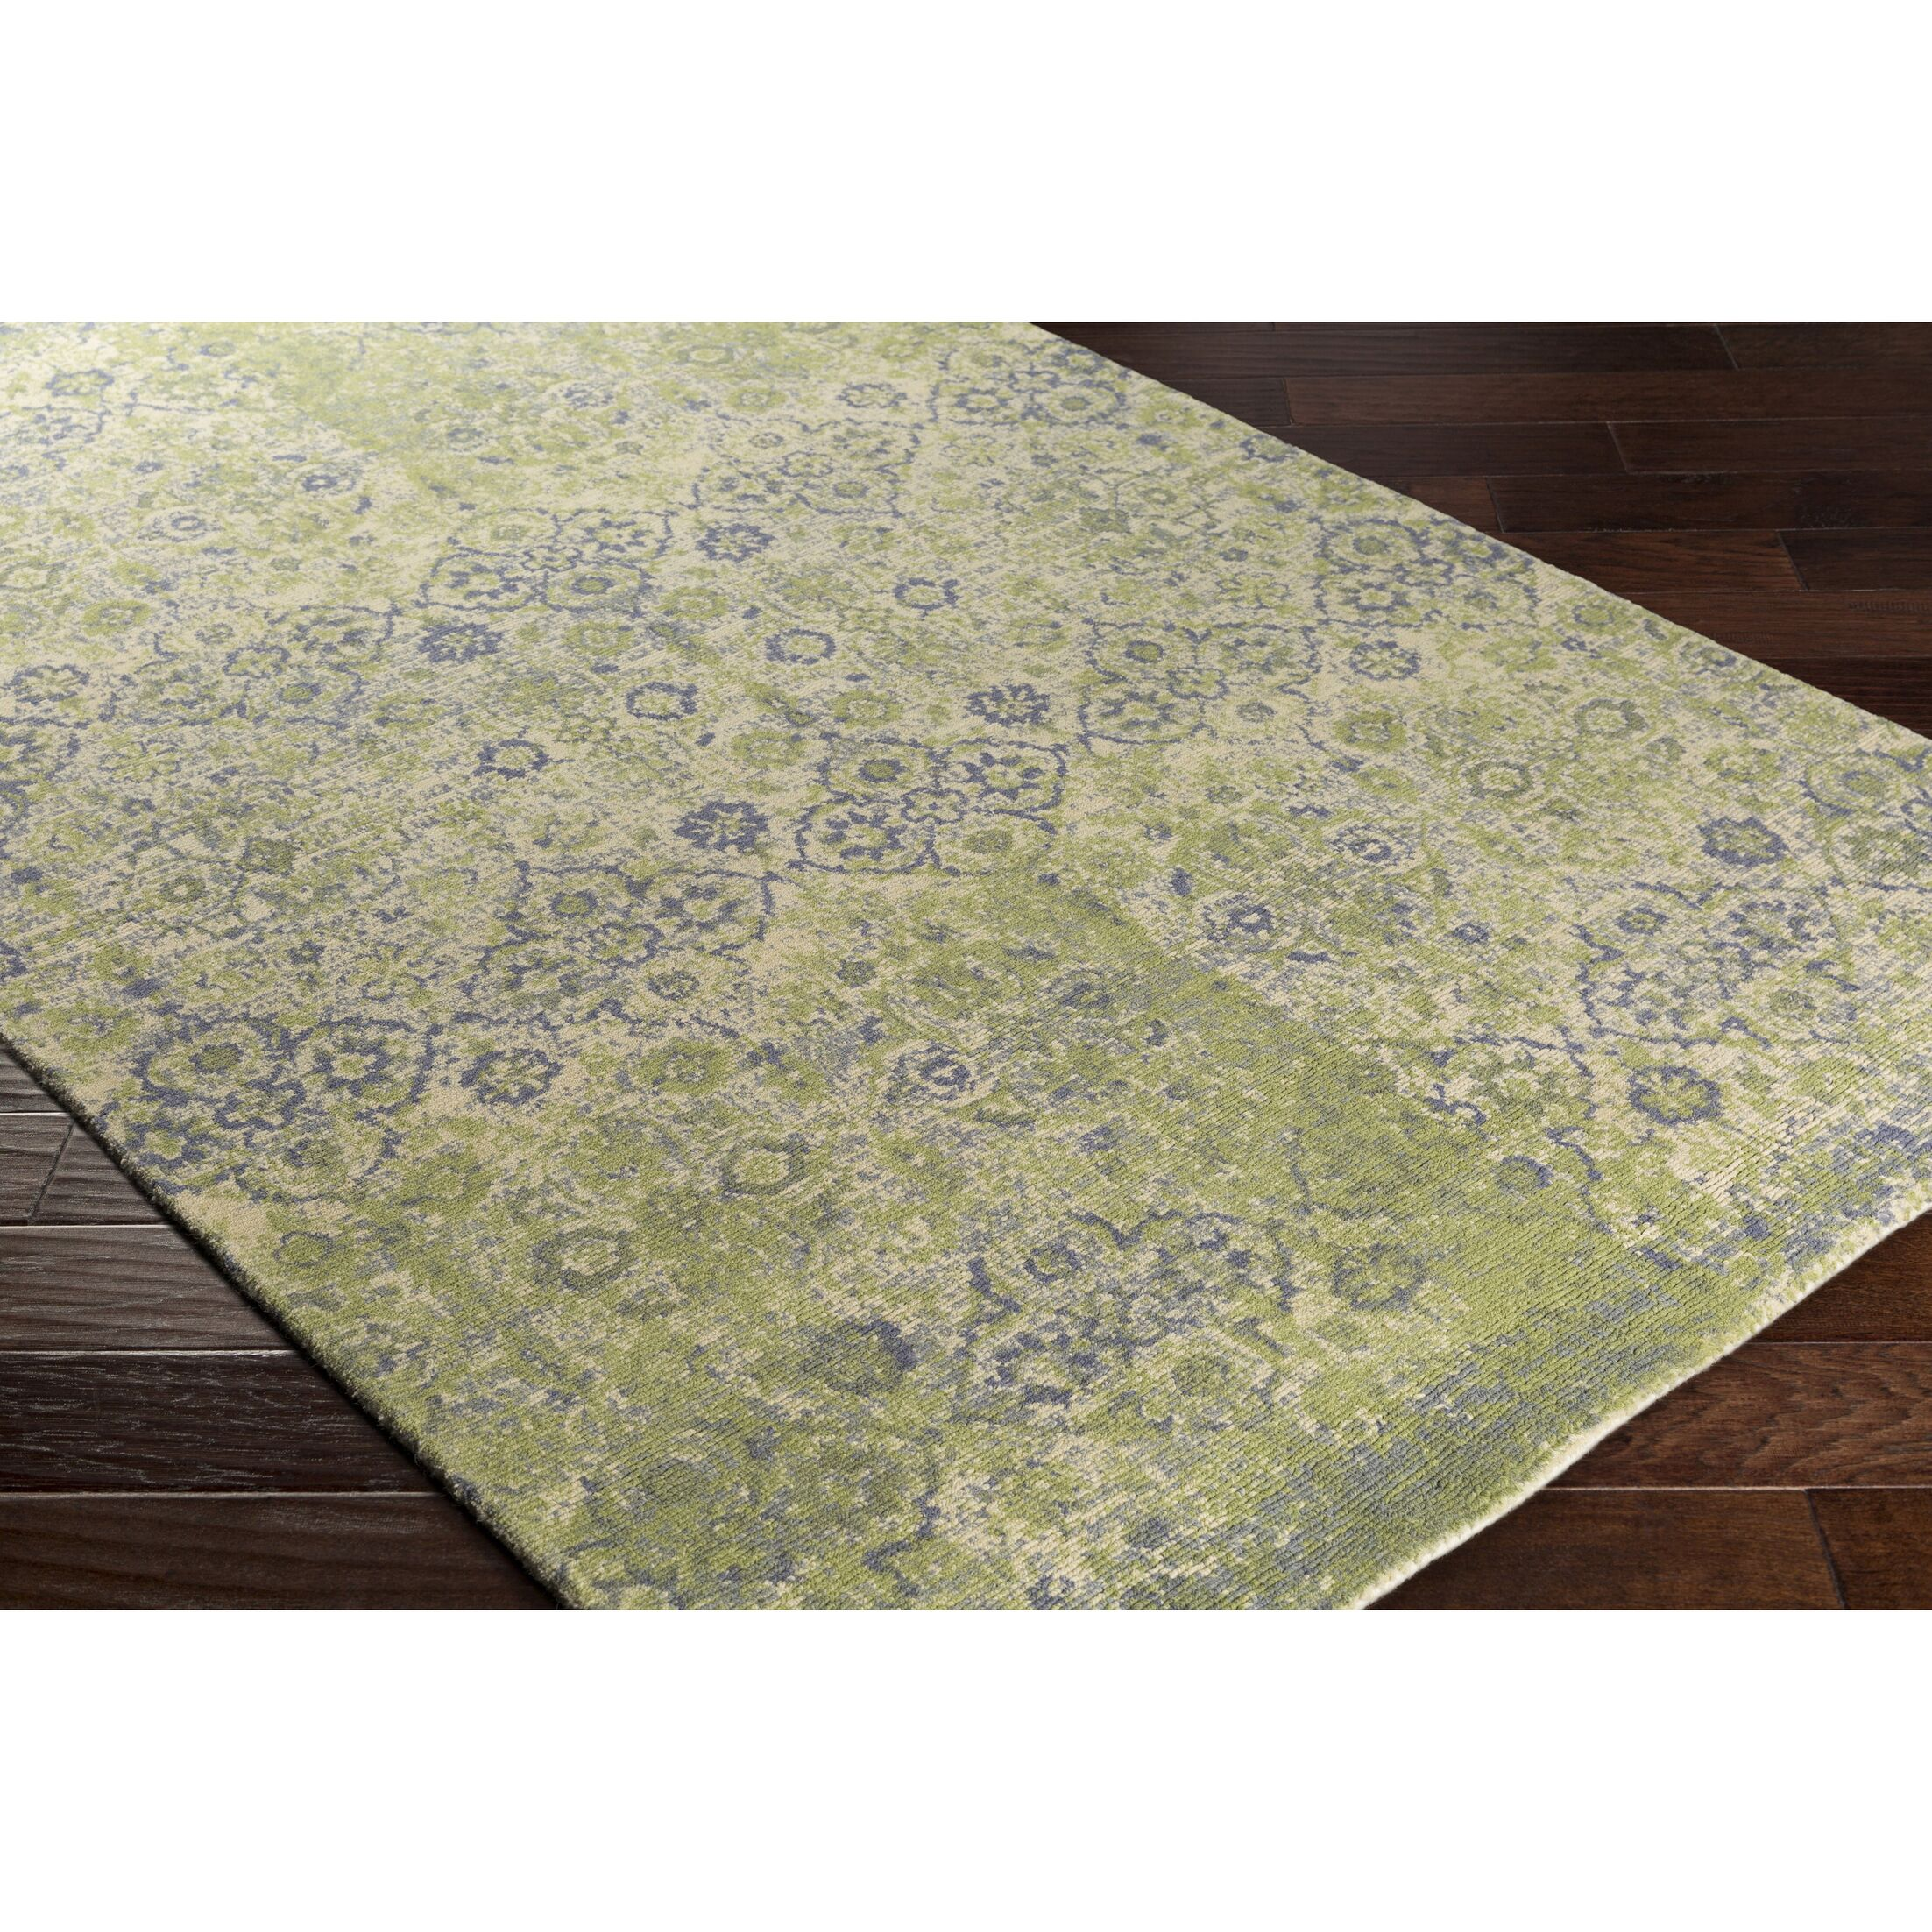 Anselma Hand-Loomed Neutral/Green Area Rug Rug Size: Rectangle 8' x 10'